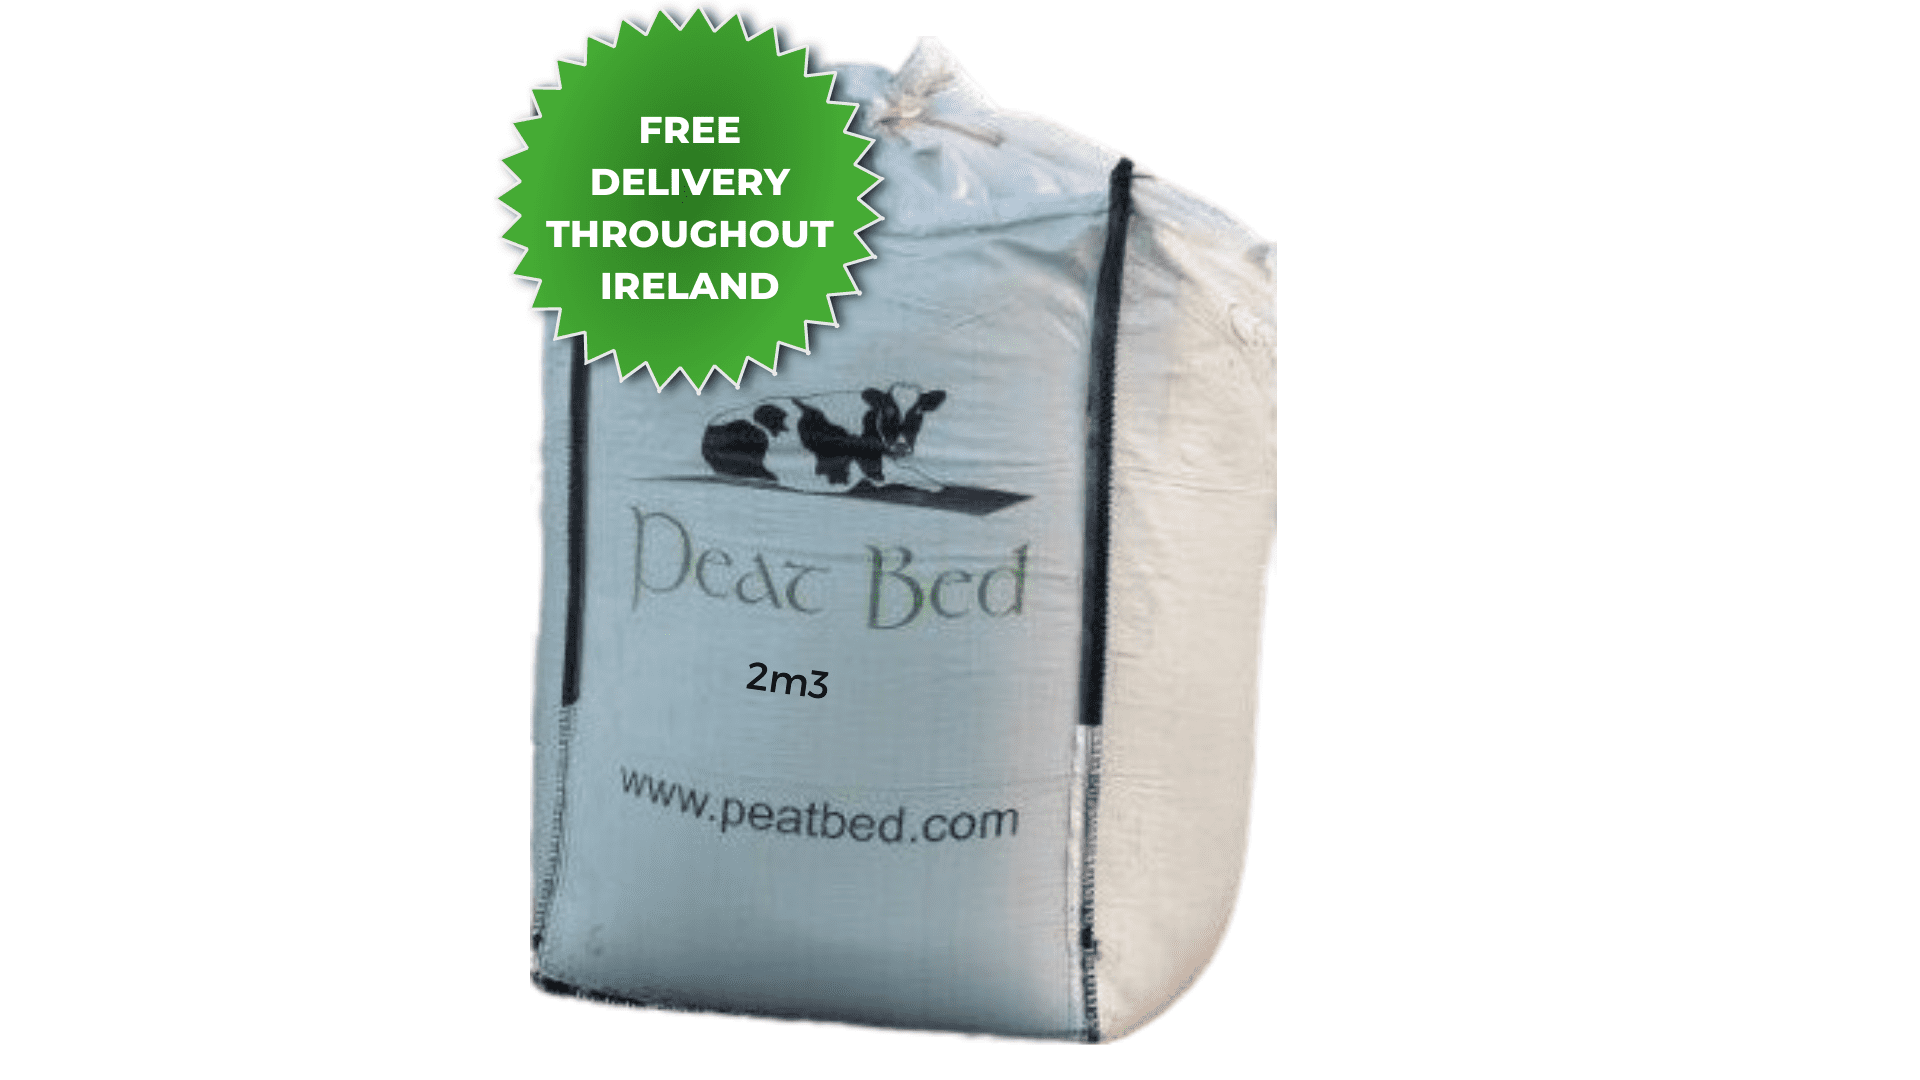 Peat Bed Fibre Bed 2m3 Bag- FREE DELIVERY